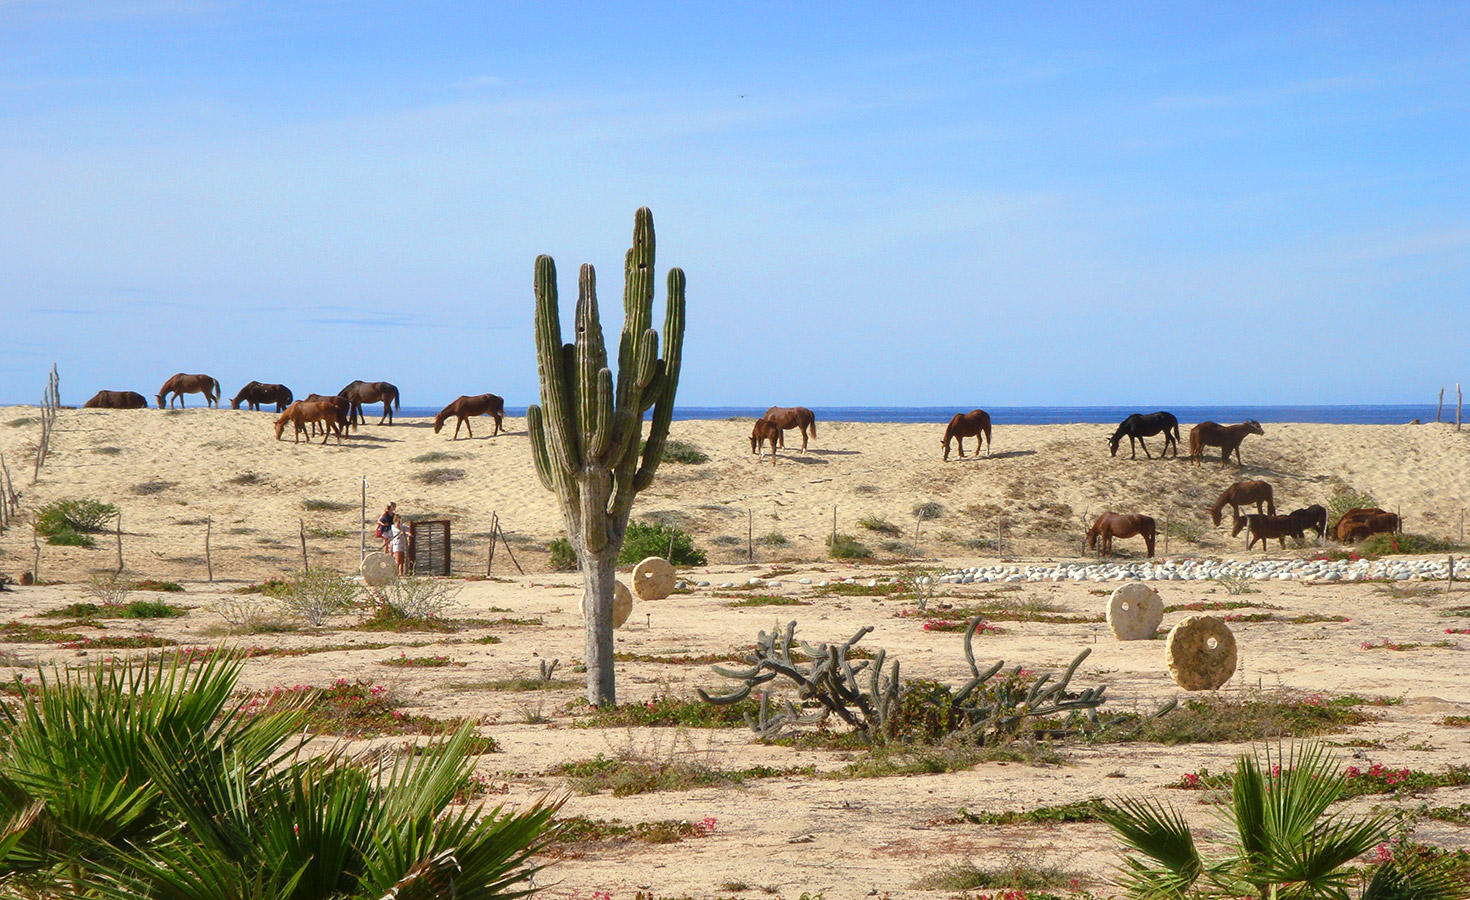 Neighborhood Horses Grazing on the Dune - Yoga Retreat - Mexico